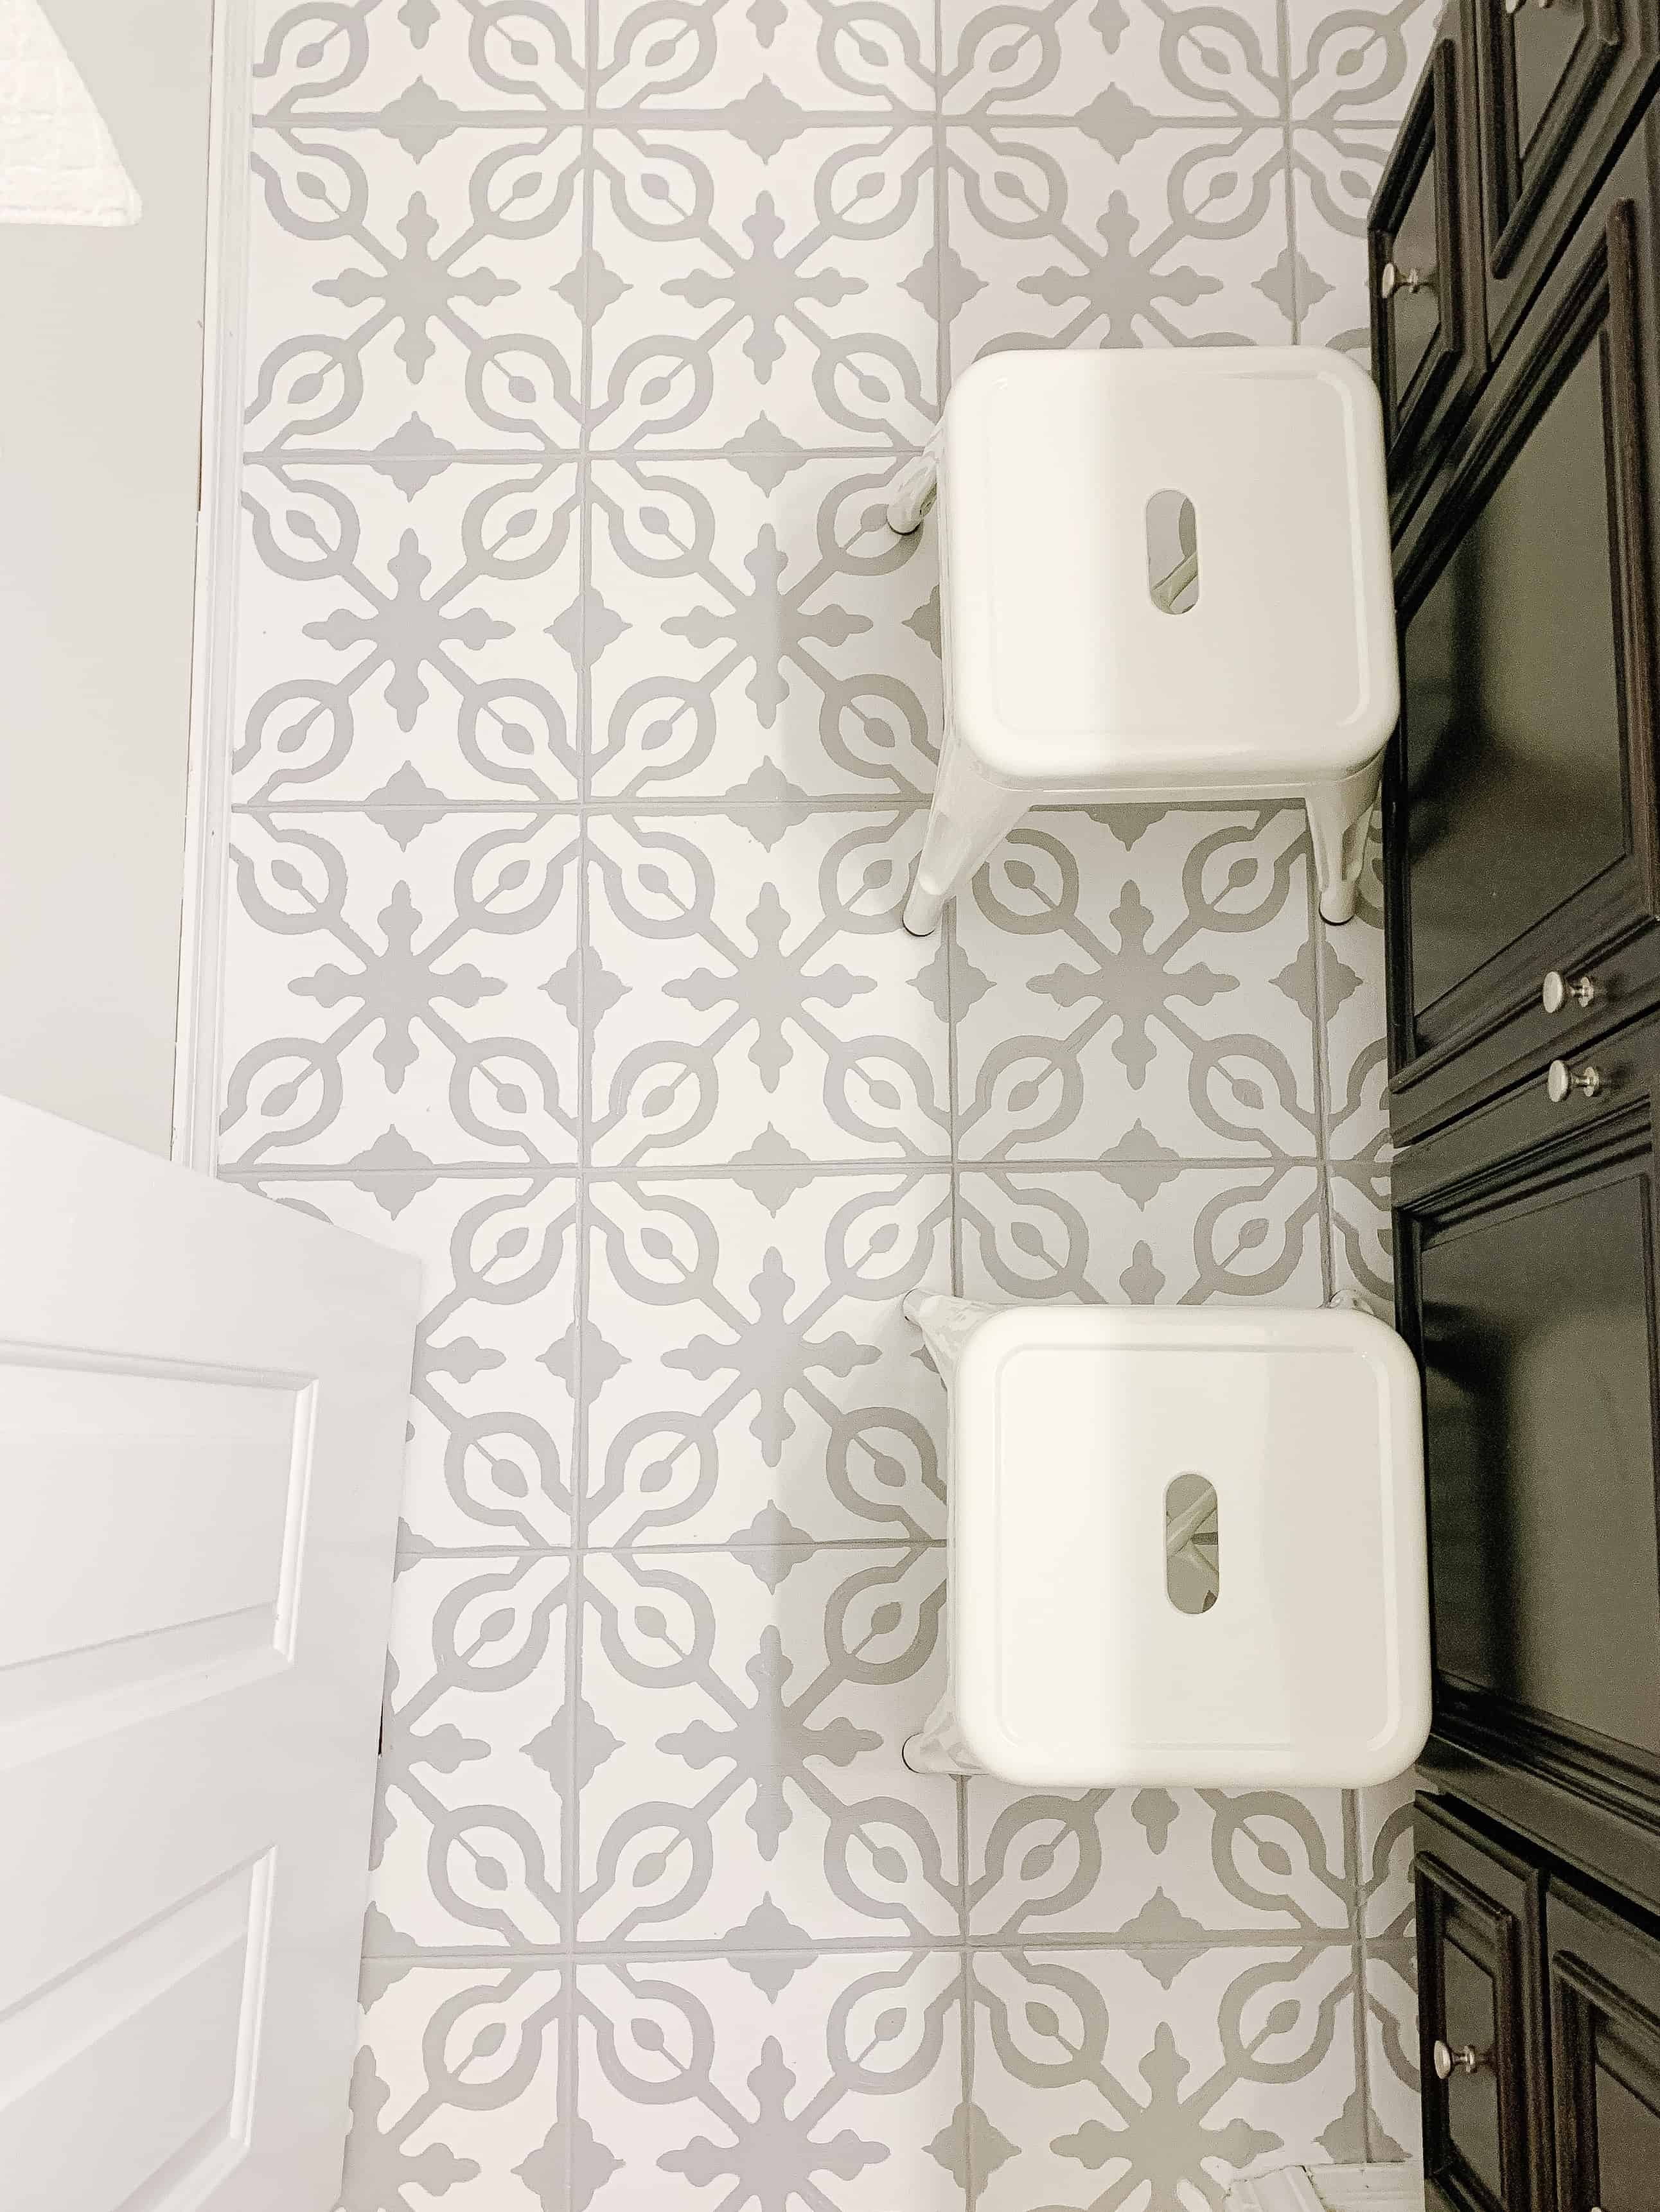 View of white metal stools on bathroom floor